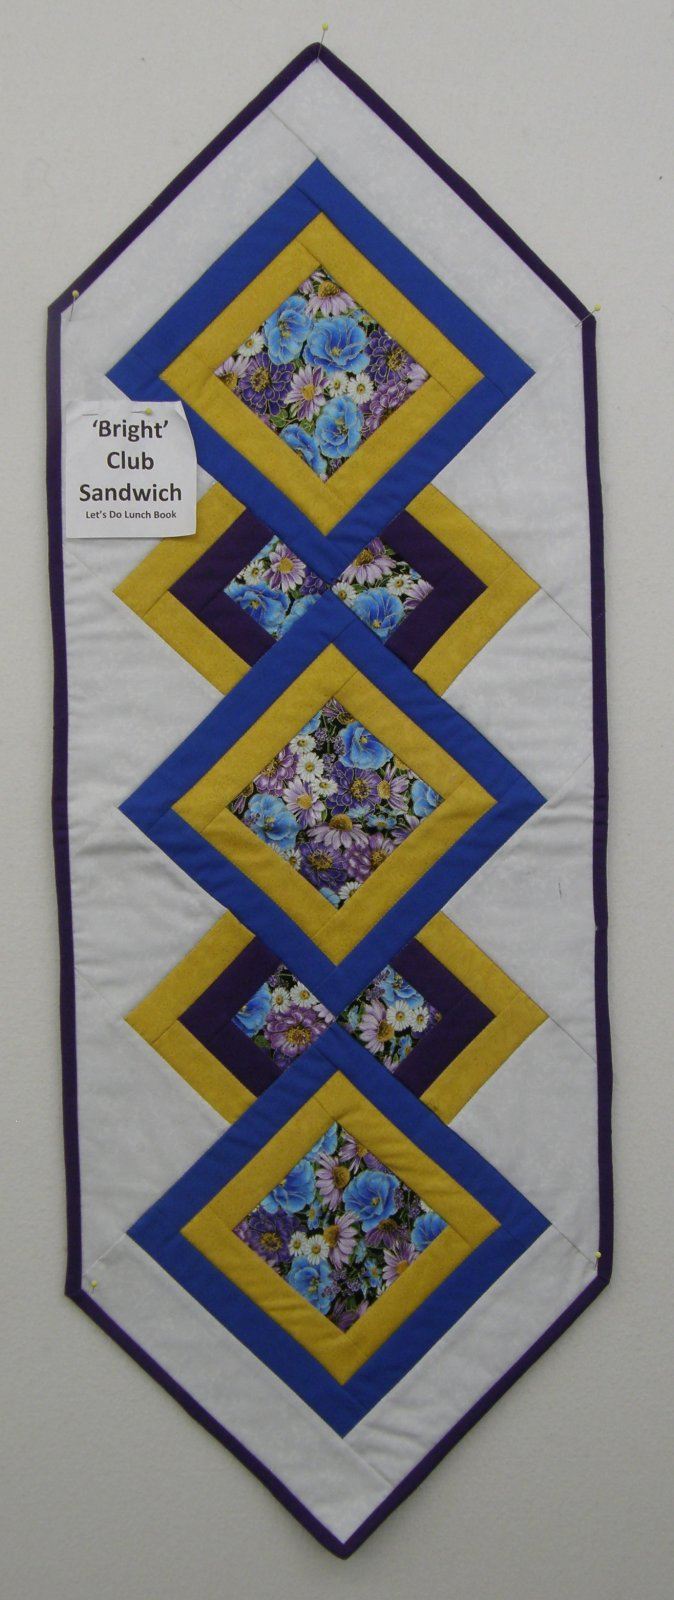 Finished Bright Club Sandwich Table Runner